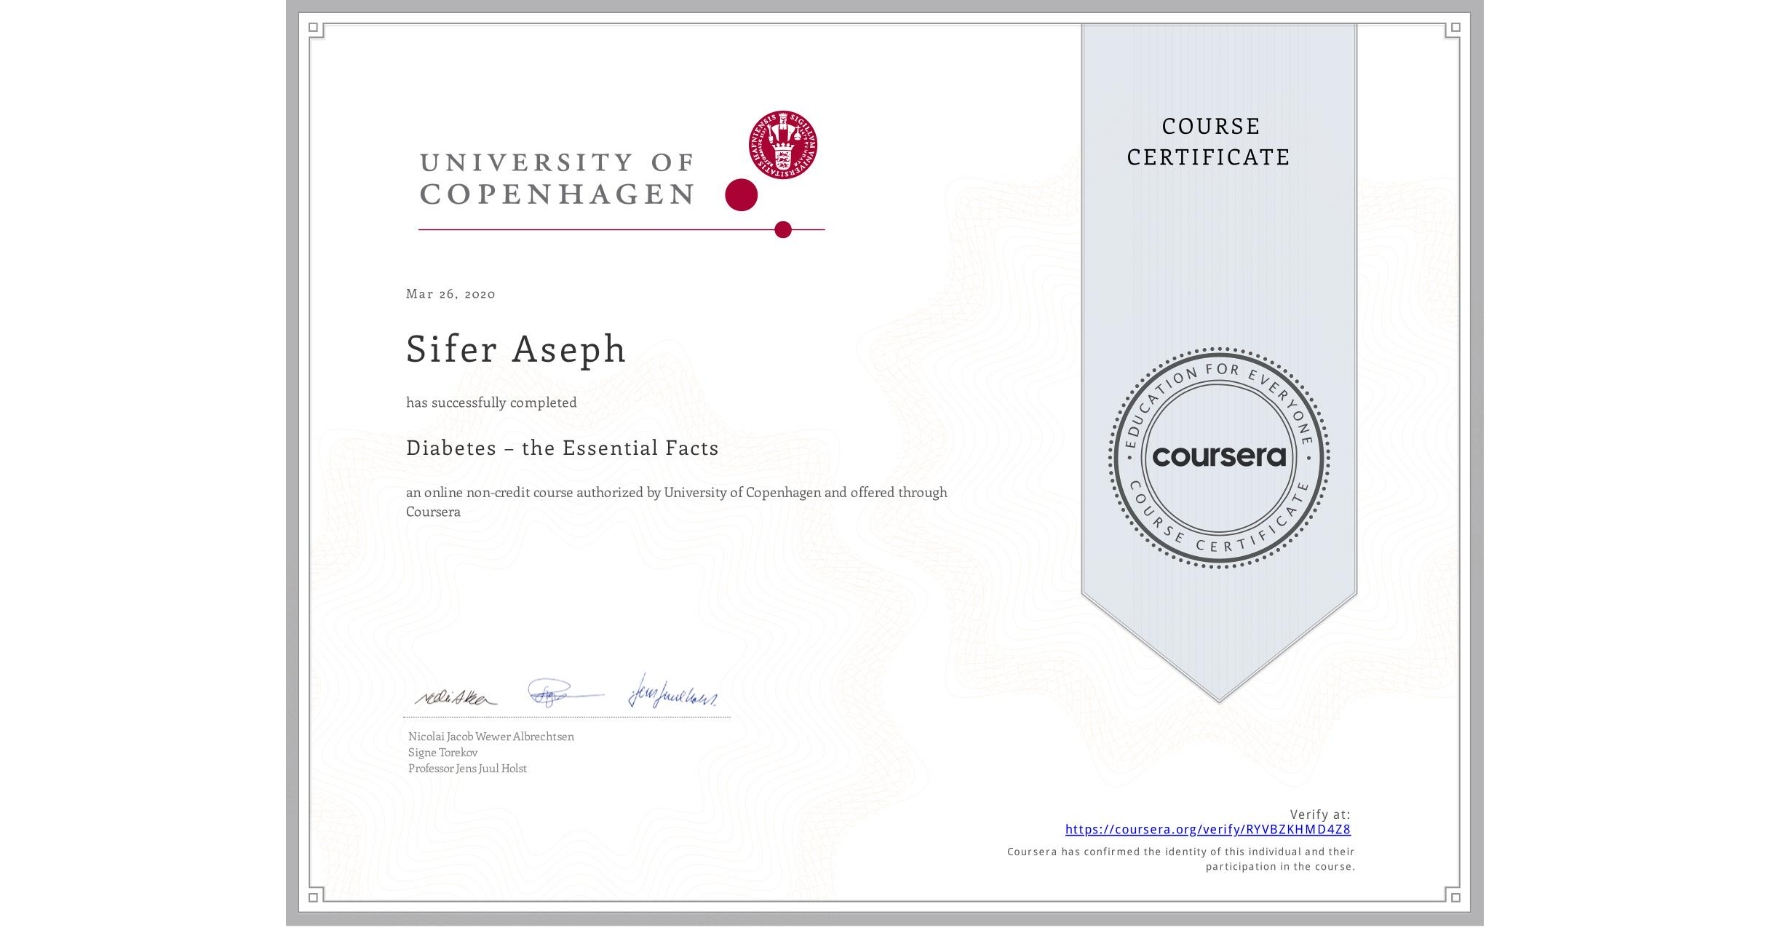 View certificate for Sifer Aseph, Diabetes – the Essential Facts, an online non-credit course authorized by University of Copenhagen and offered through Coursera